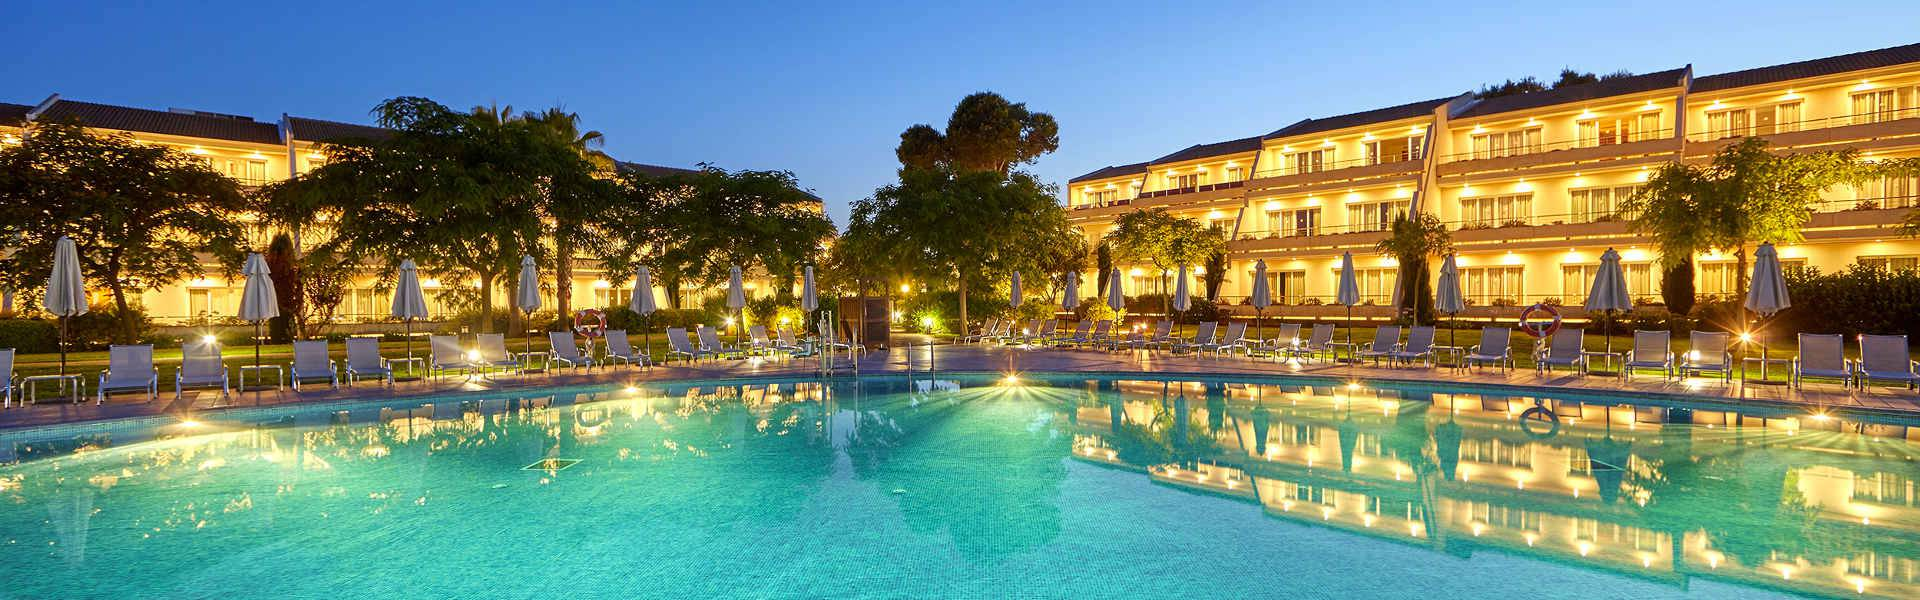 Majorca - Blau Hotels & Resorts